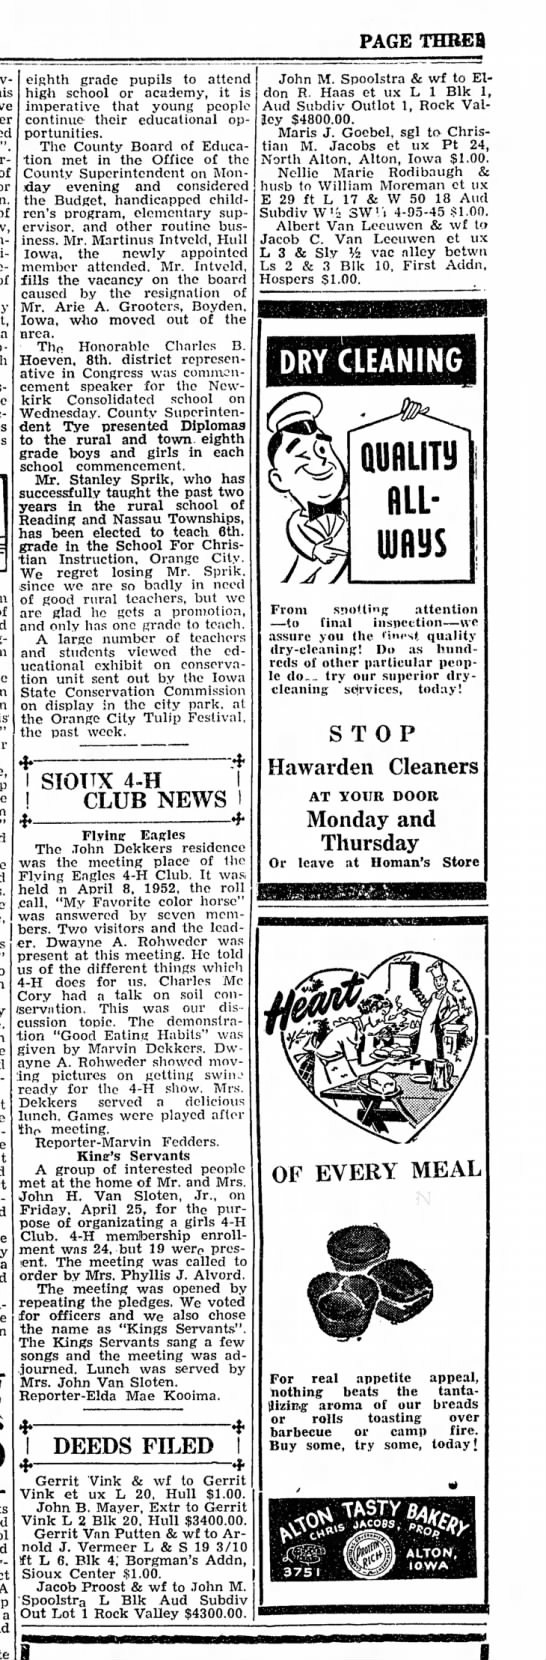 Spoolstra, John M 19520529 Article Iowa; Property Transfer - PAGE THBEB a a a eighth grade pupils to attend...